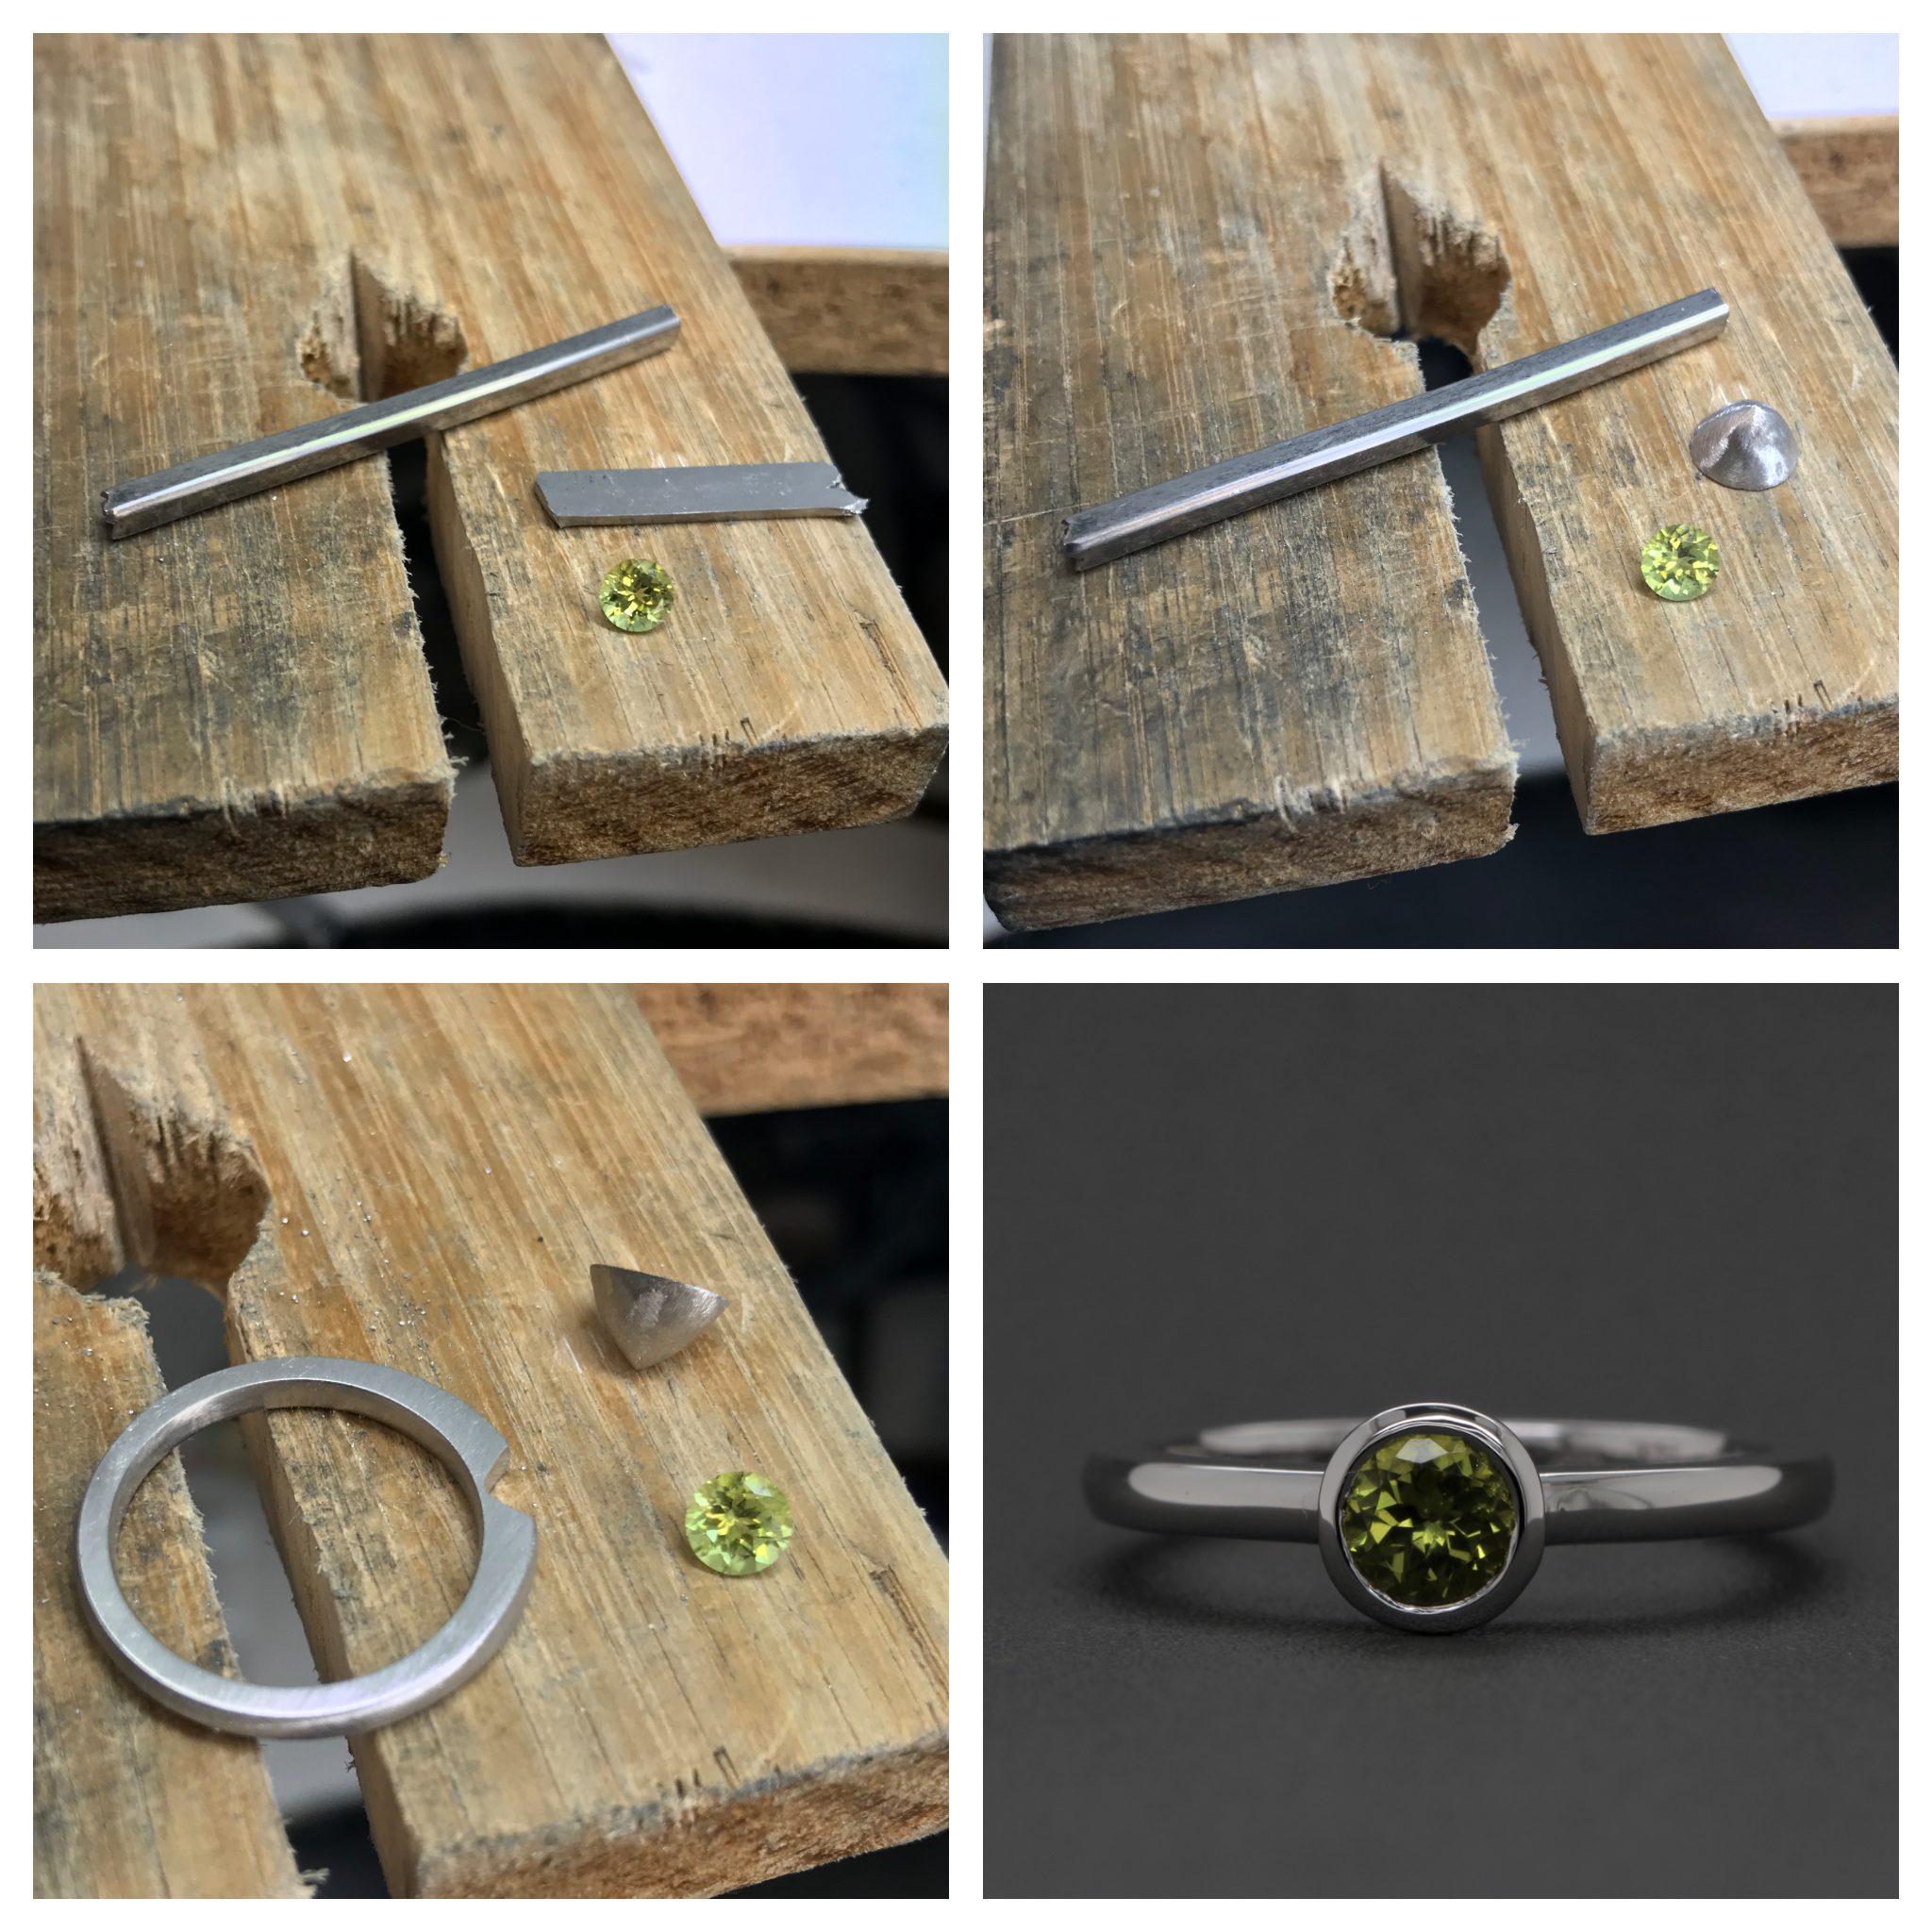 From the workshop, creating Beth and Brendan's meteorite peridot engagement ring.